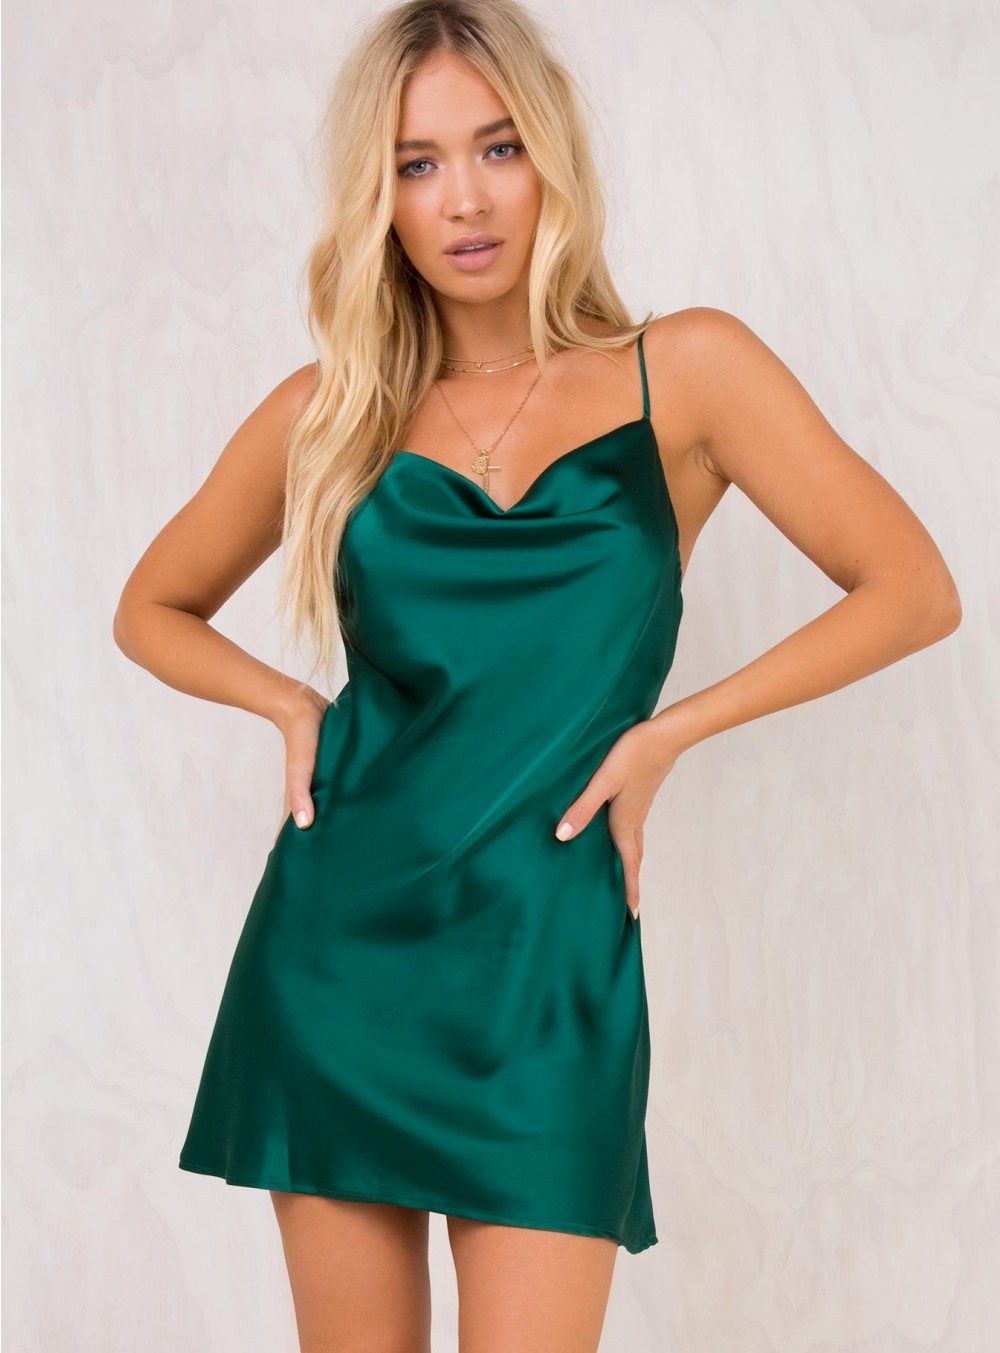 BETTA VANORE MINI DRESS FOREST GREEN.jpg